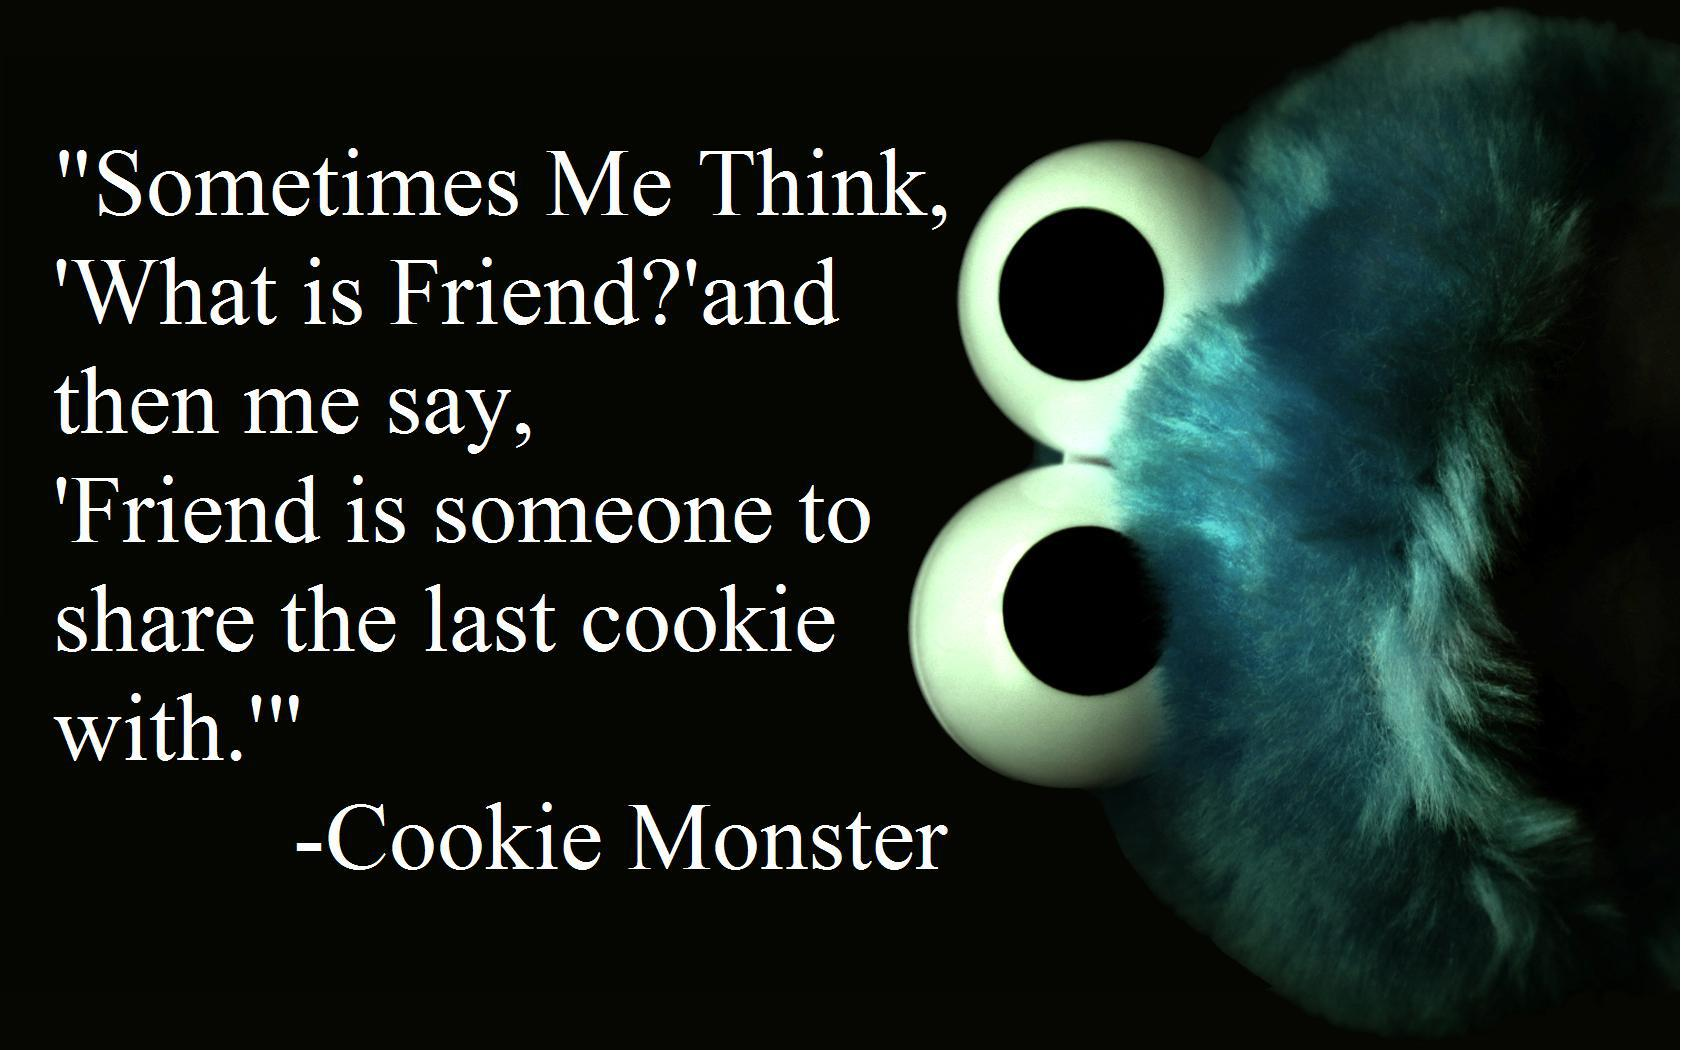 """Sometimes me think, 'What is friend?' and then me say, 'Friend is someone to share the last cookie with.'"" – Cookie Monster [1681 x 1050]"